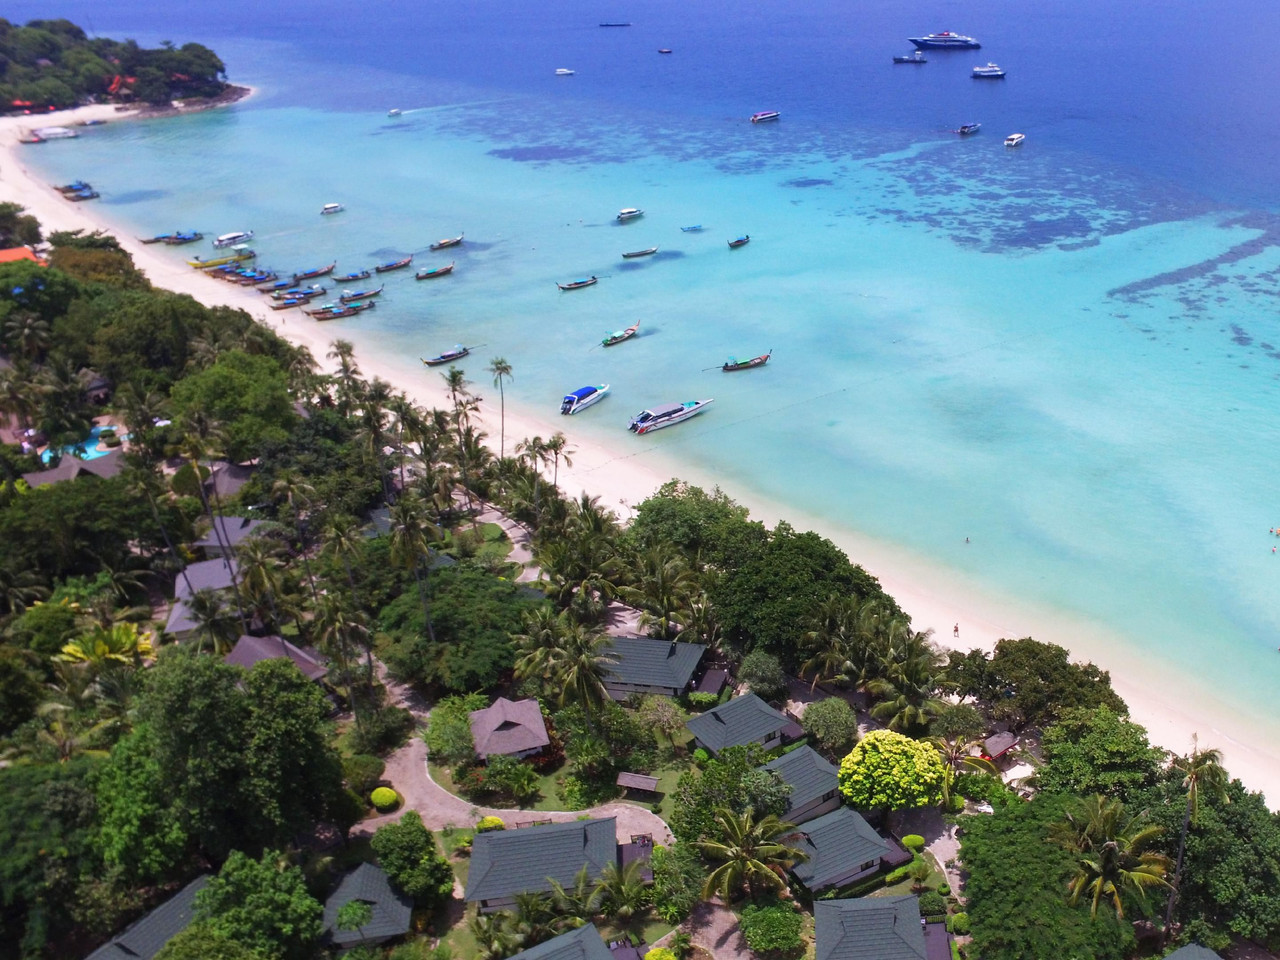 holiday-inn-resort-phi-phi-island-540669